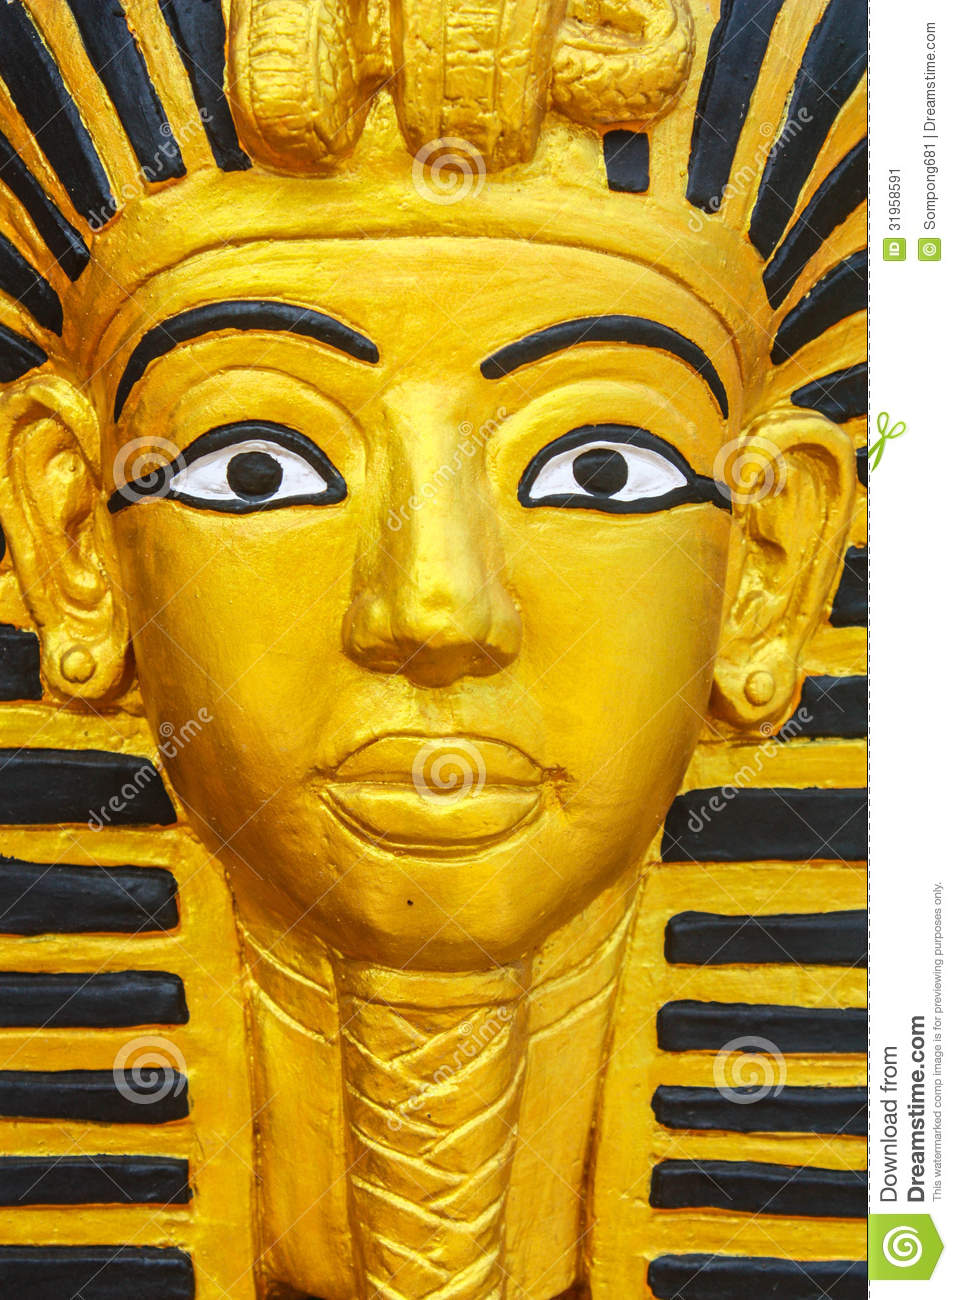 pharaoh sculpture stock image  image of past  famous